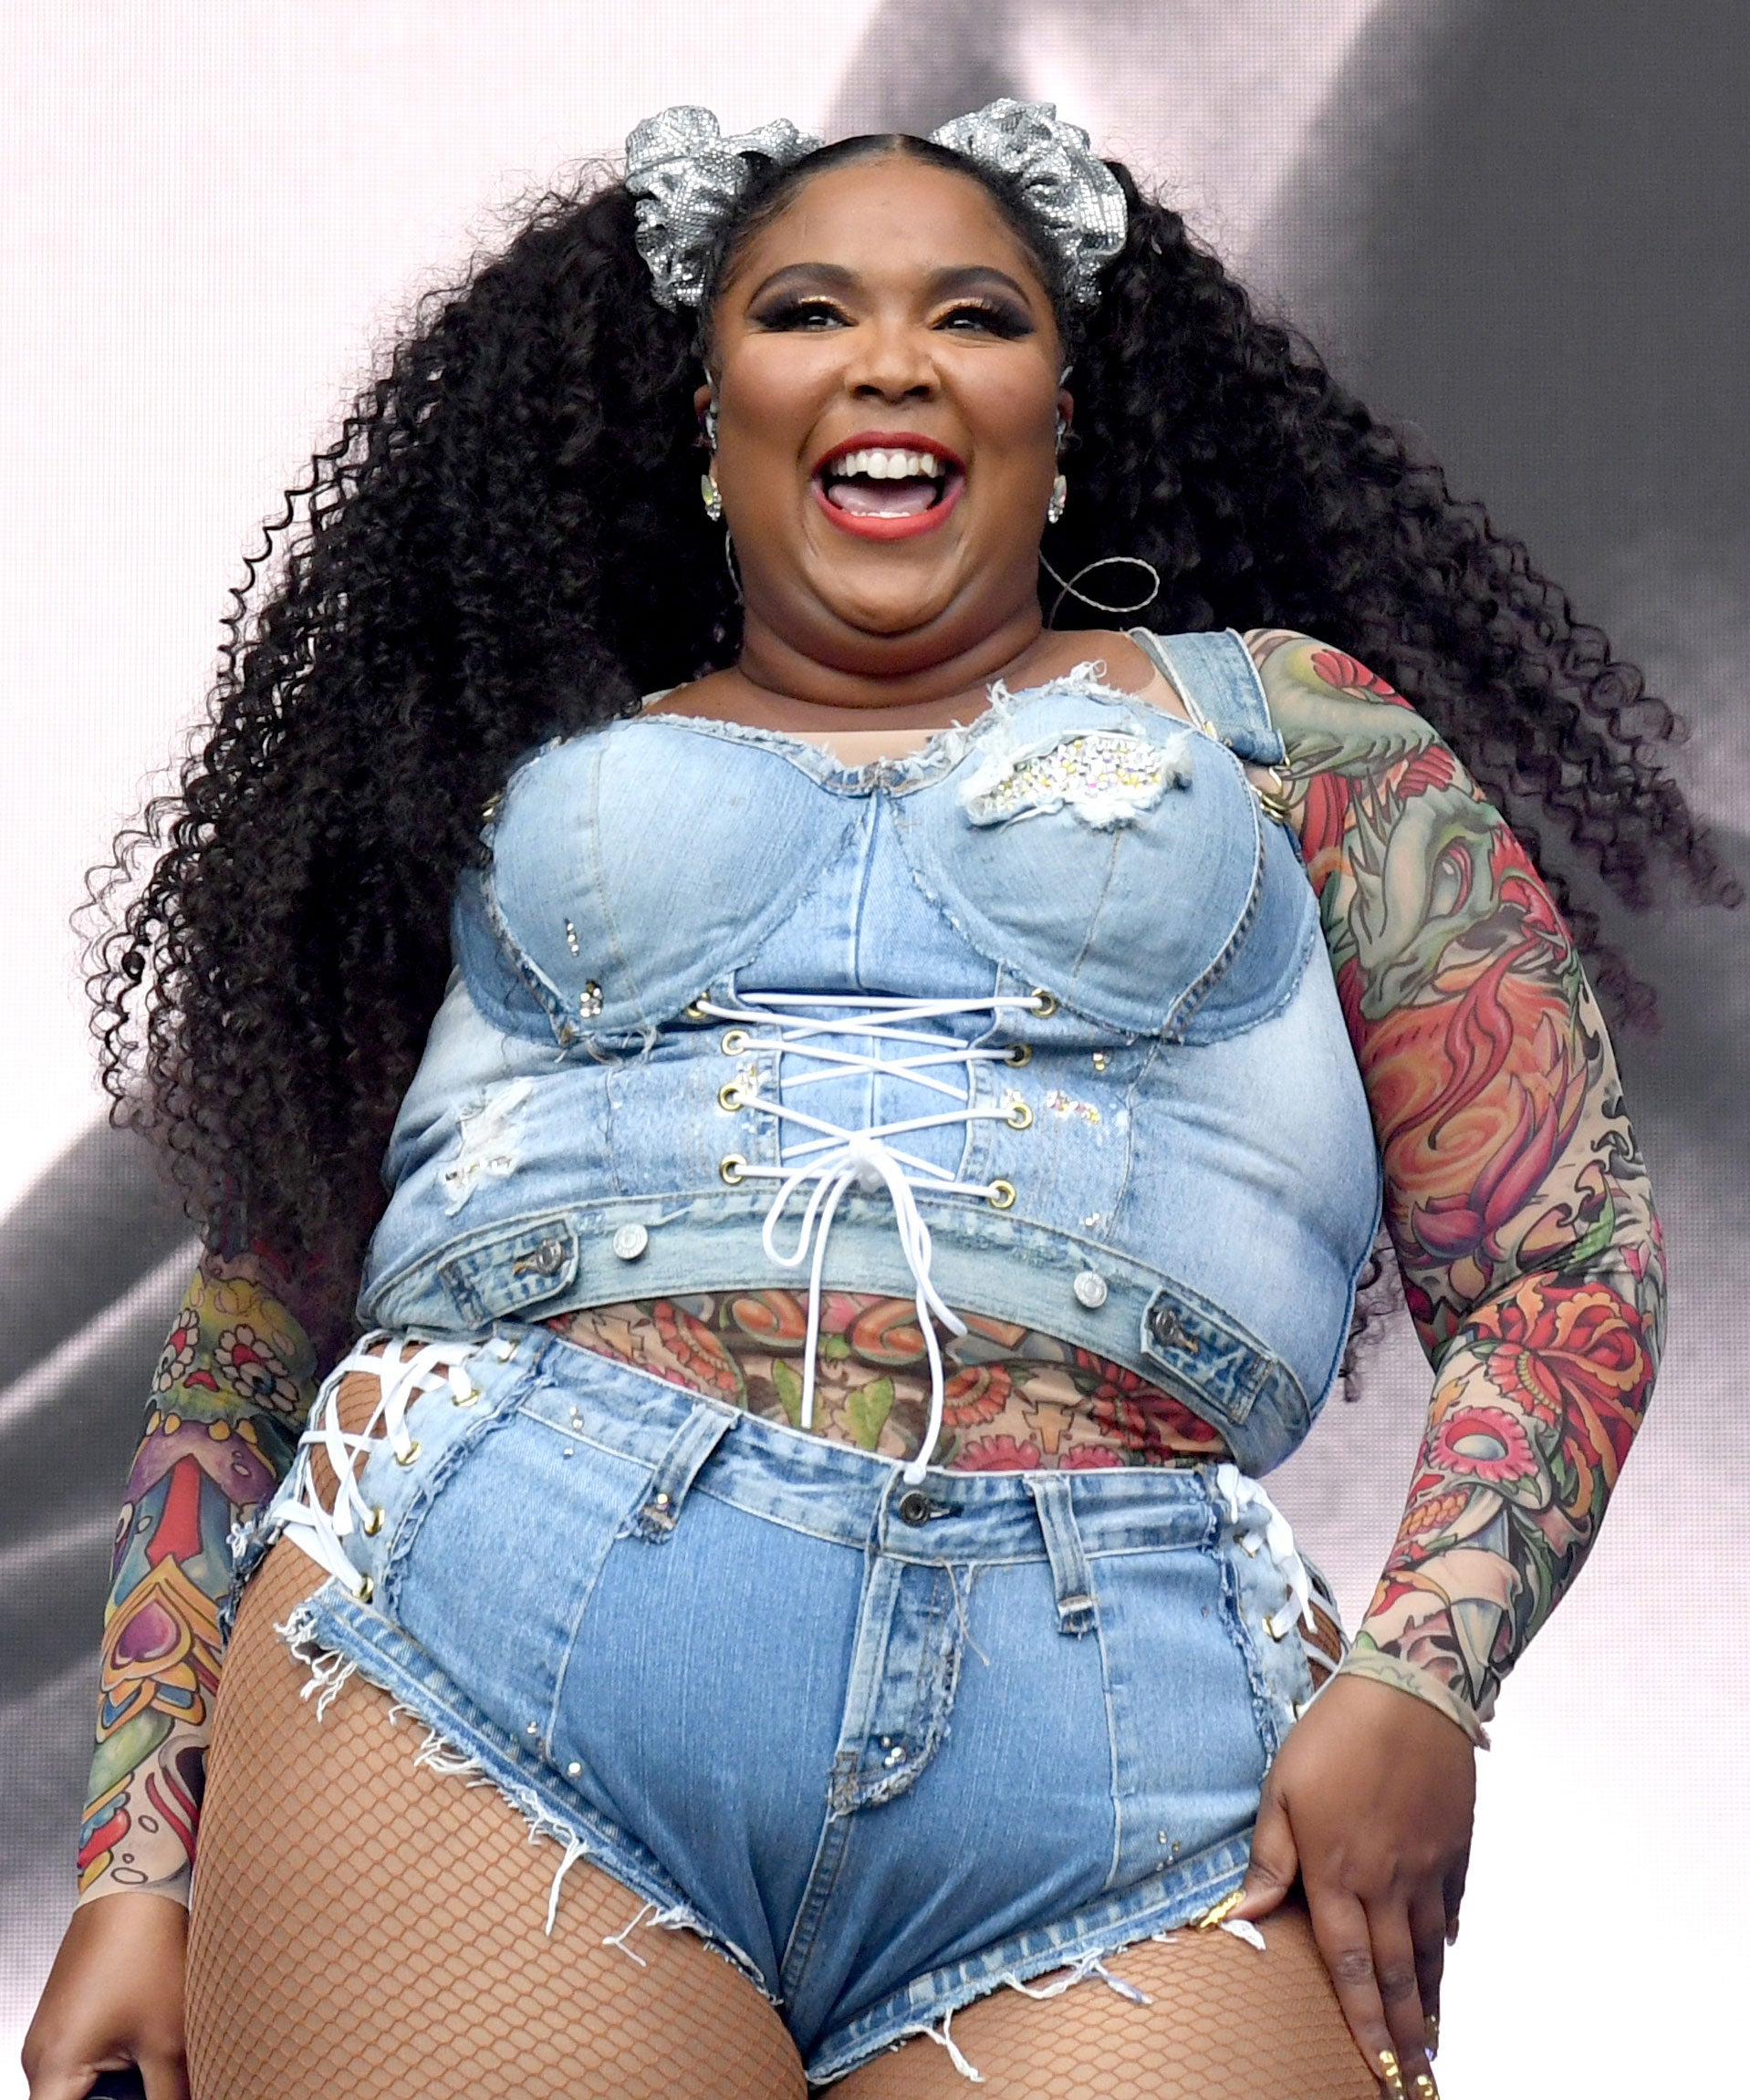 Lizzo's Courtside Dance Is Breaking The Internet